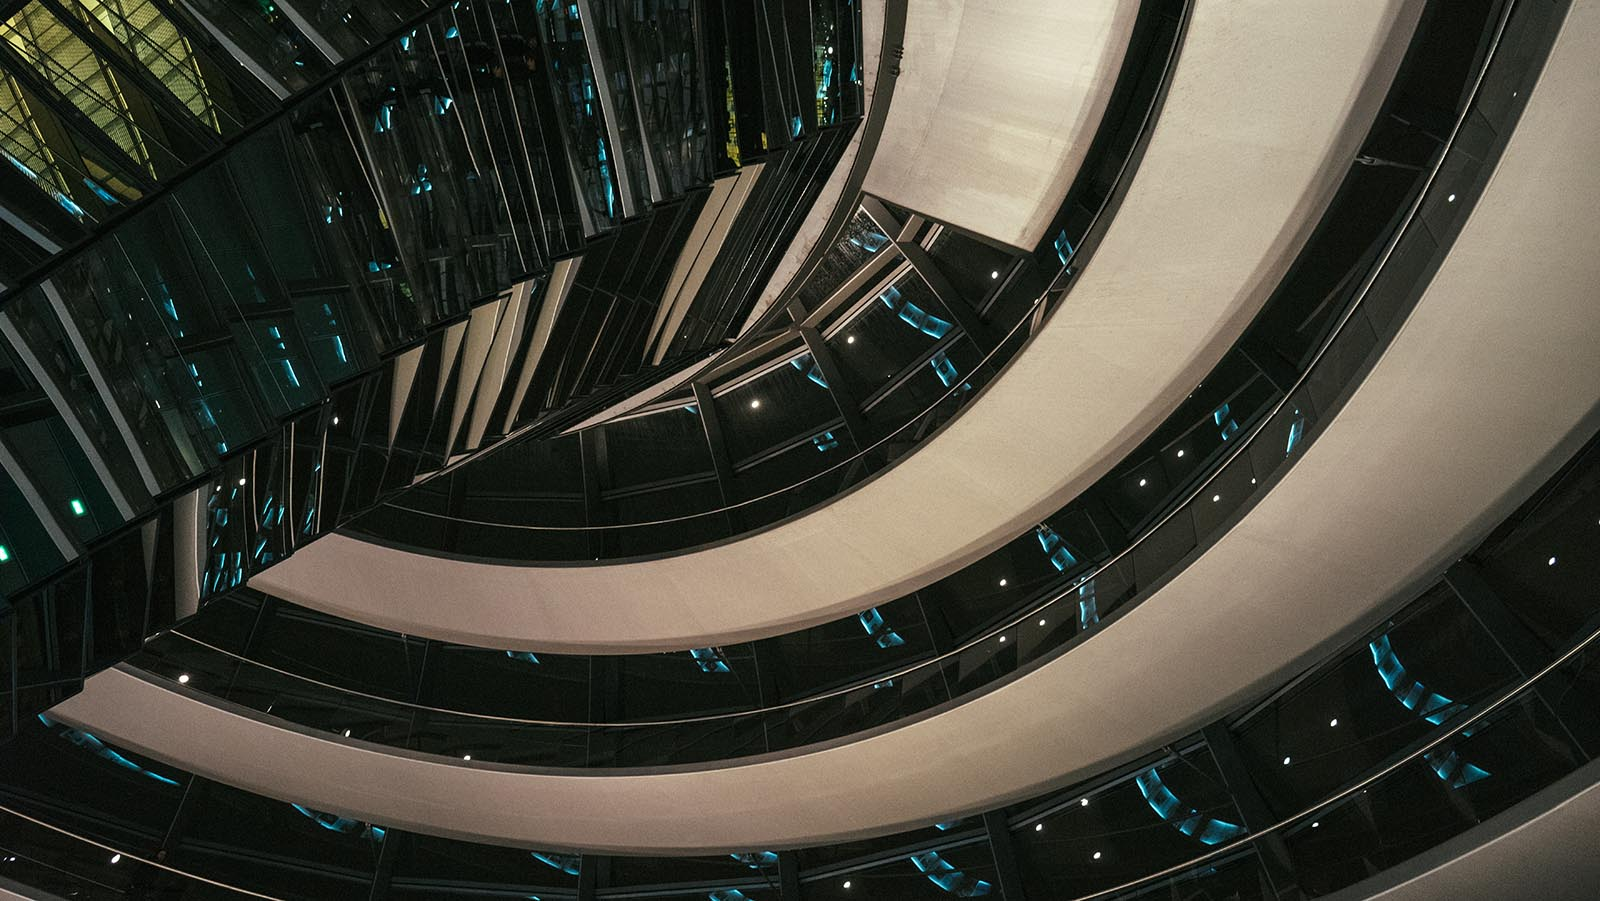 Inside The Reichstag Building At Night